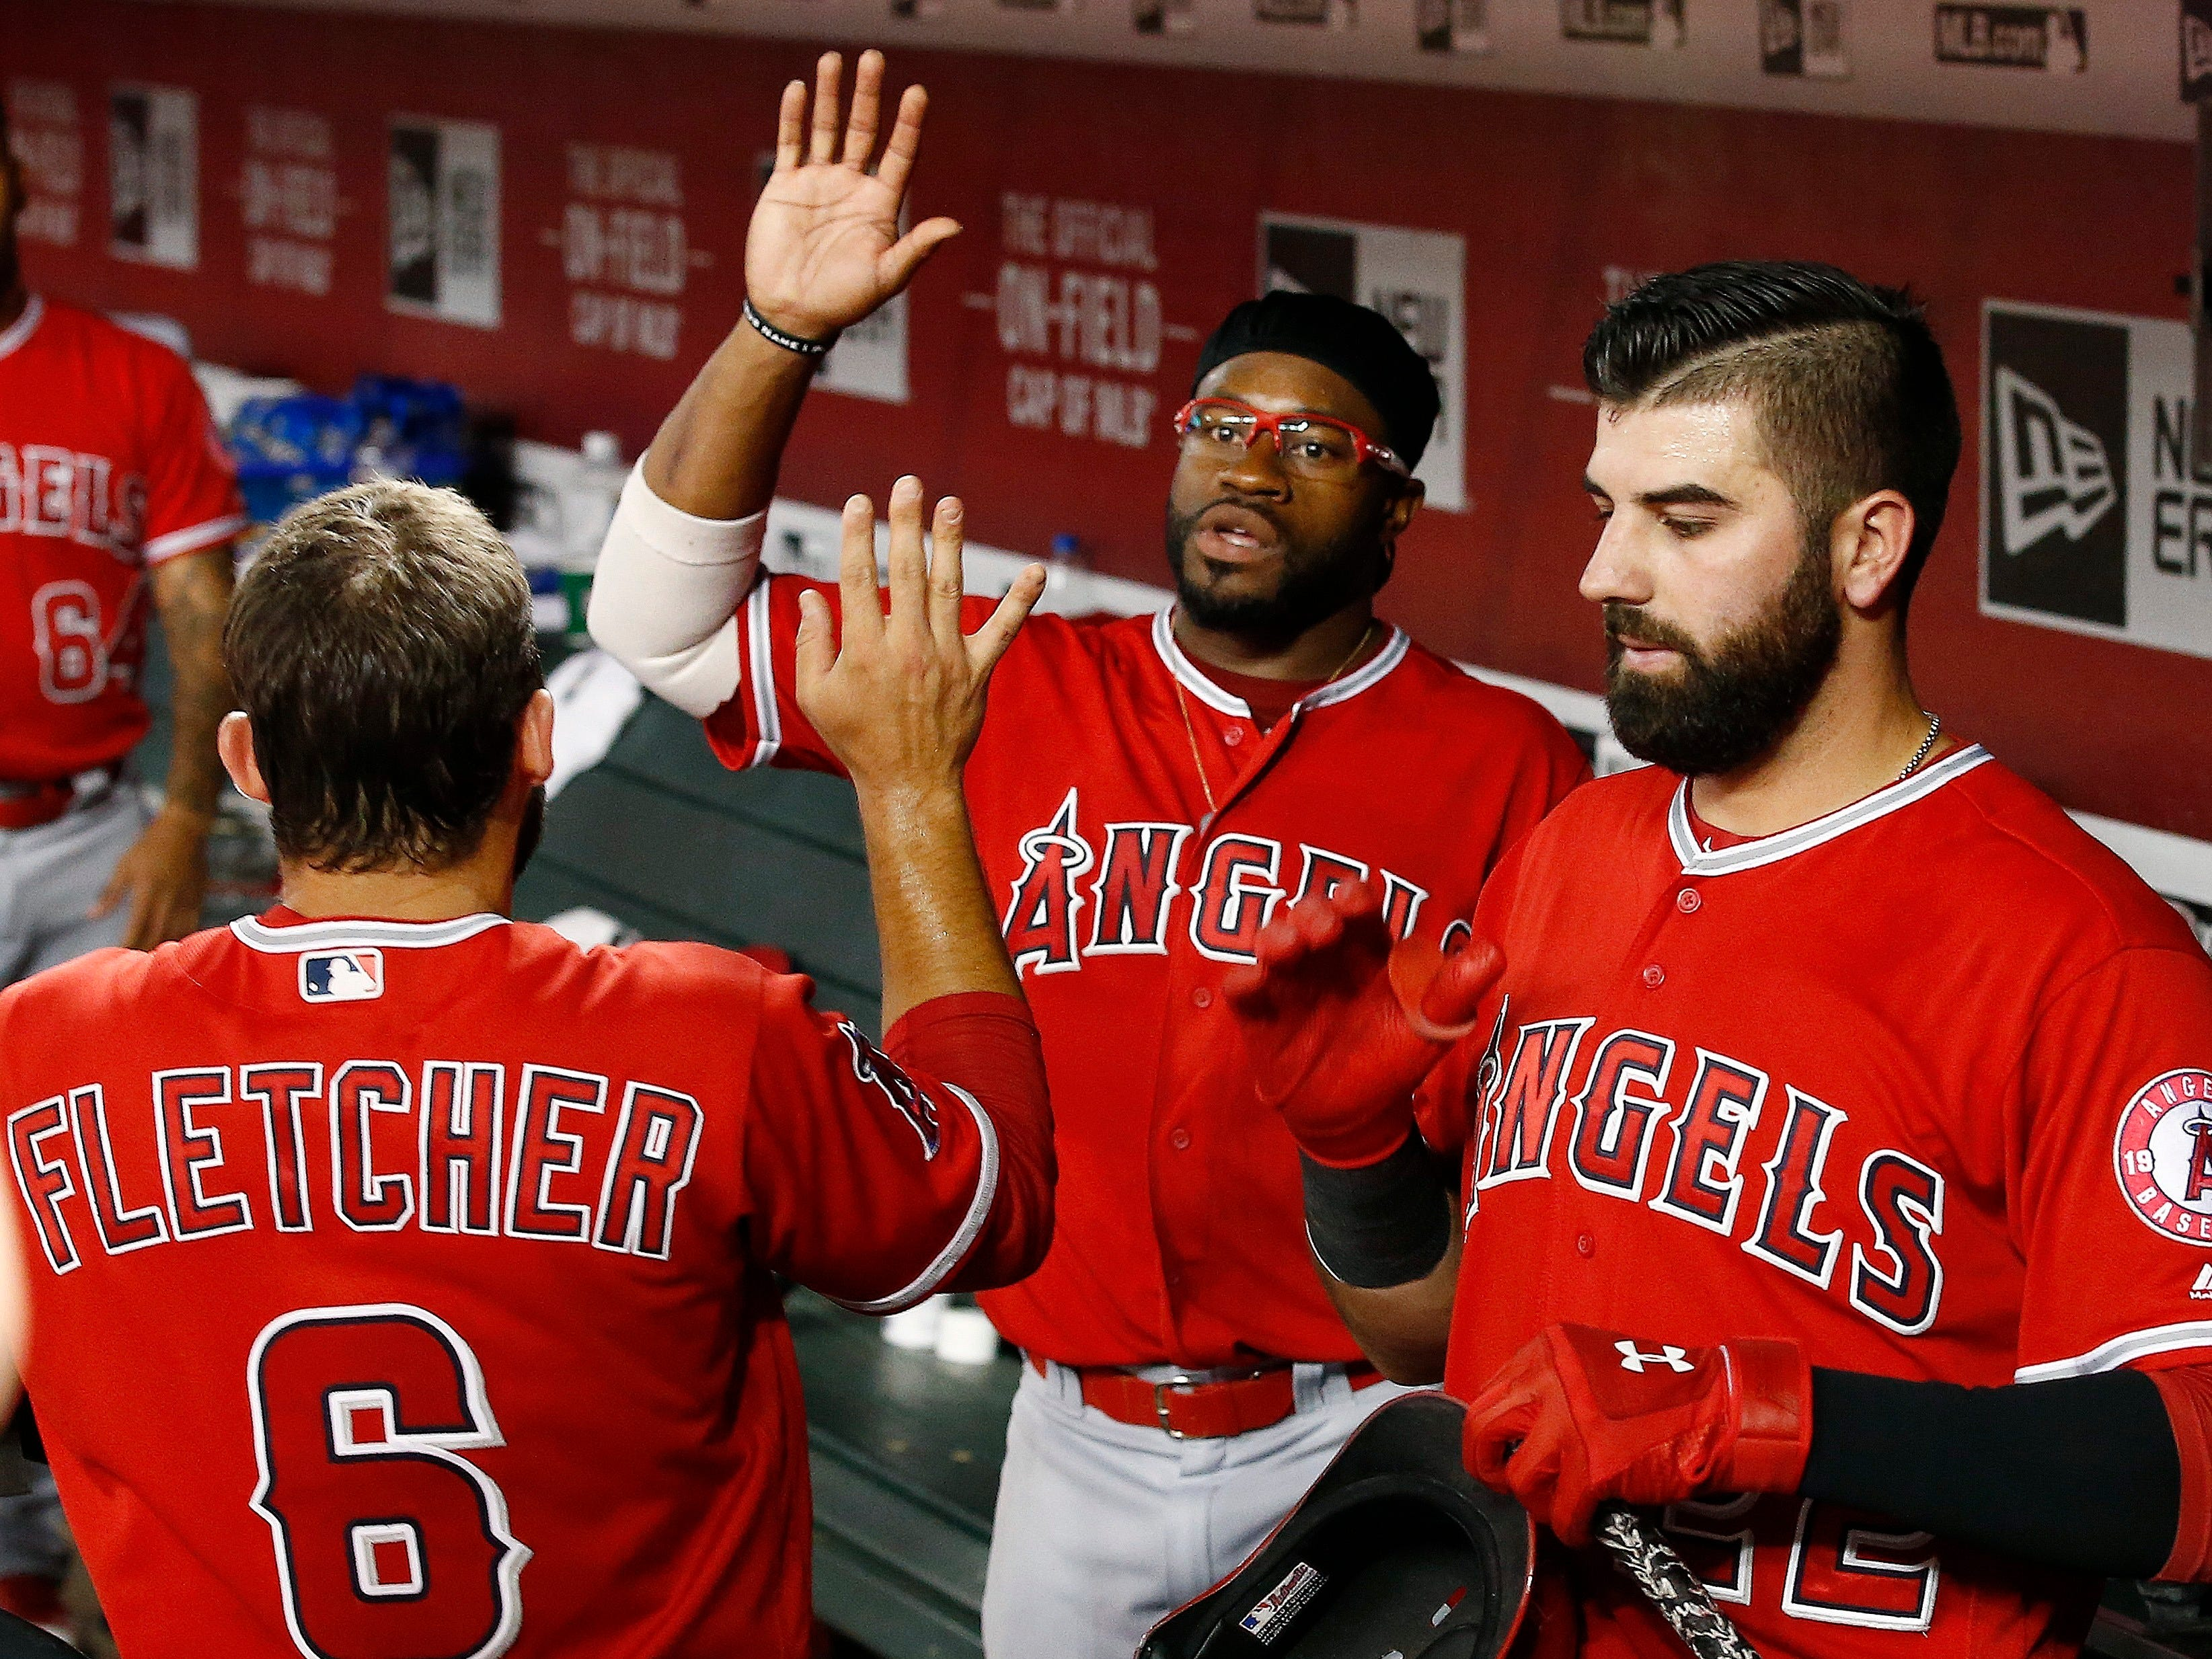 Los Angeles Angels' David Fletcher (6) celebrates his run scored against the Arizona Diamondbacks with Kaleb Cowart, right, and Eric Young Jr., middle, during the third inning of a baseball game Tuesday, Aug. 21, 2018, in Phoenix.